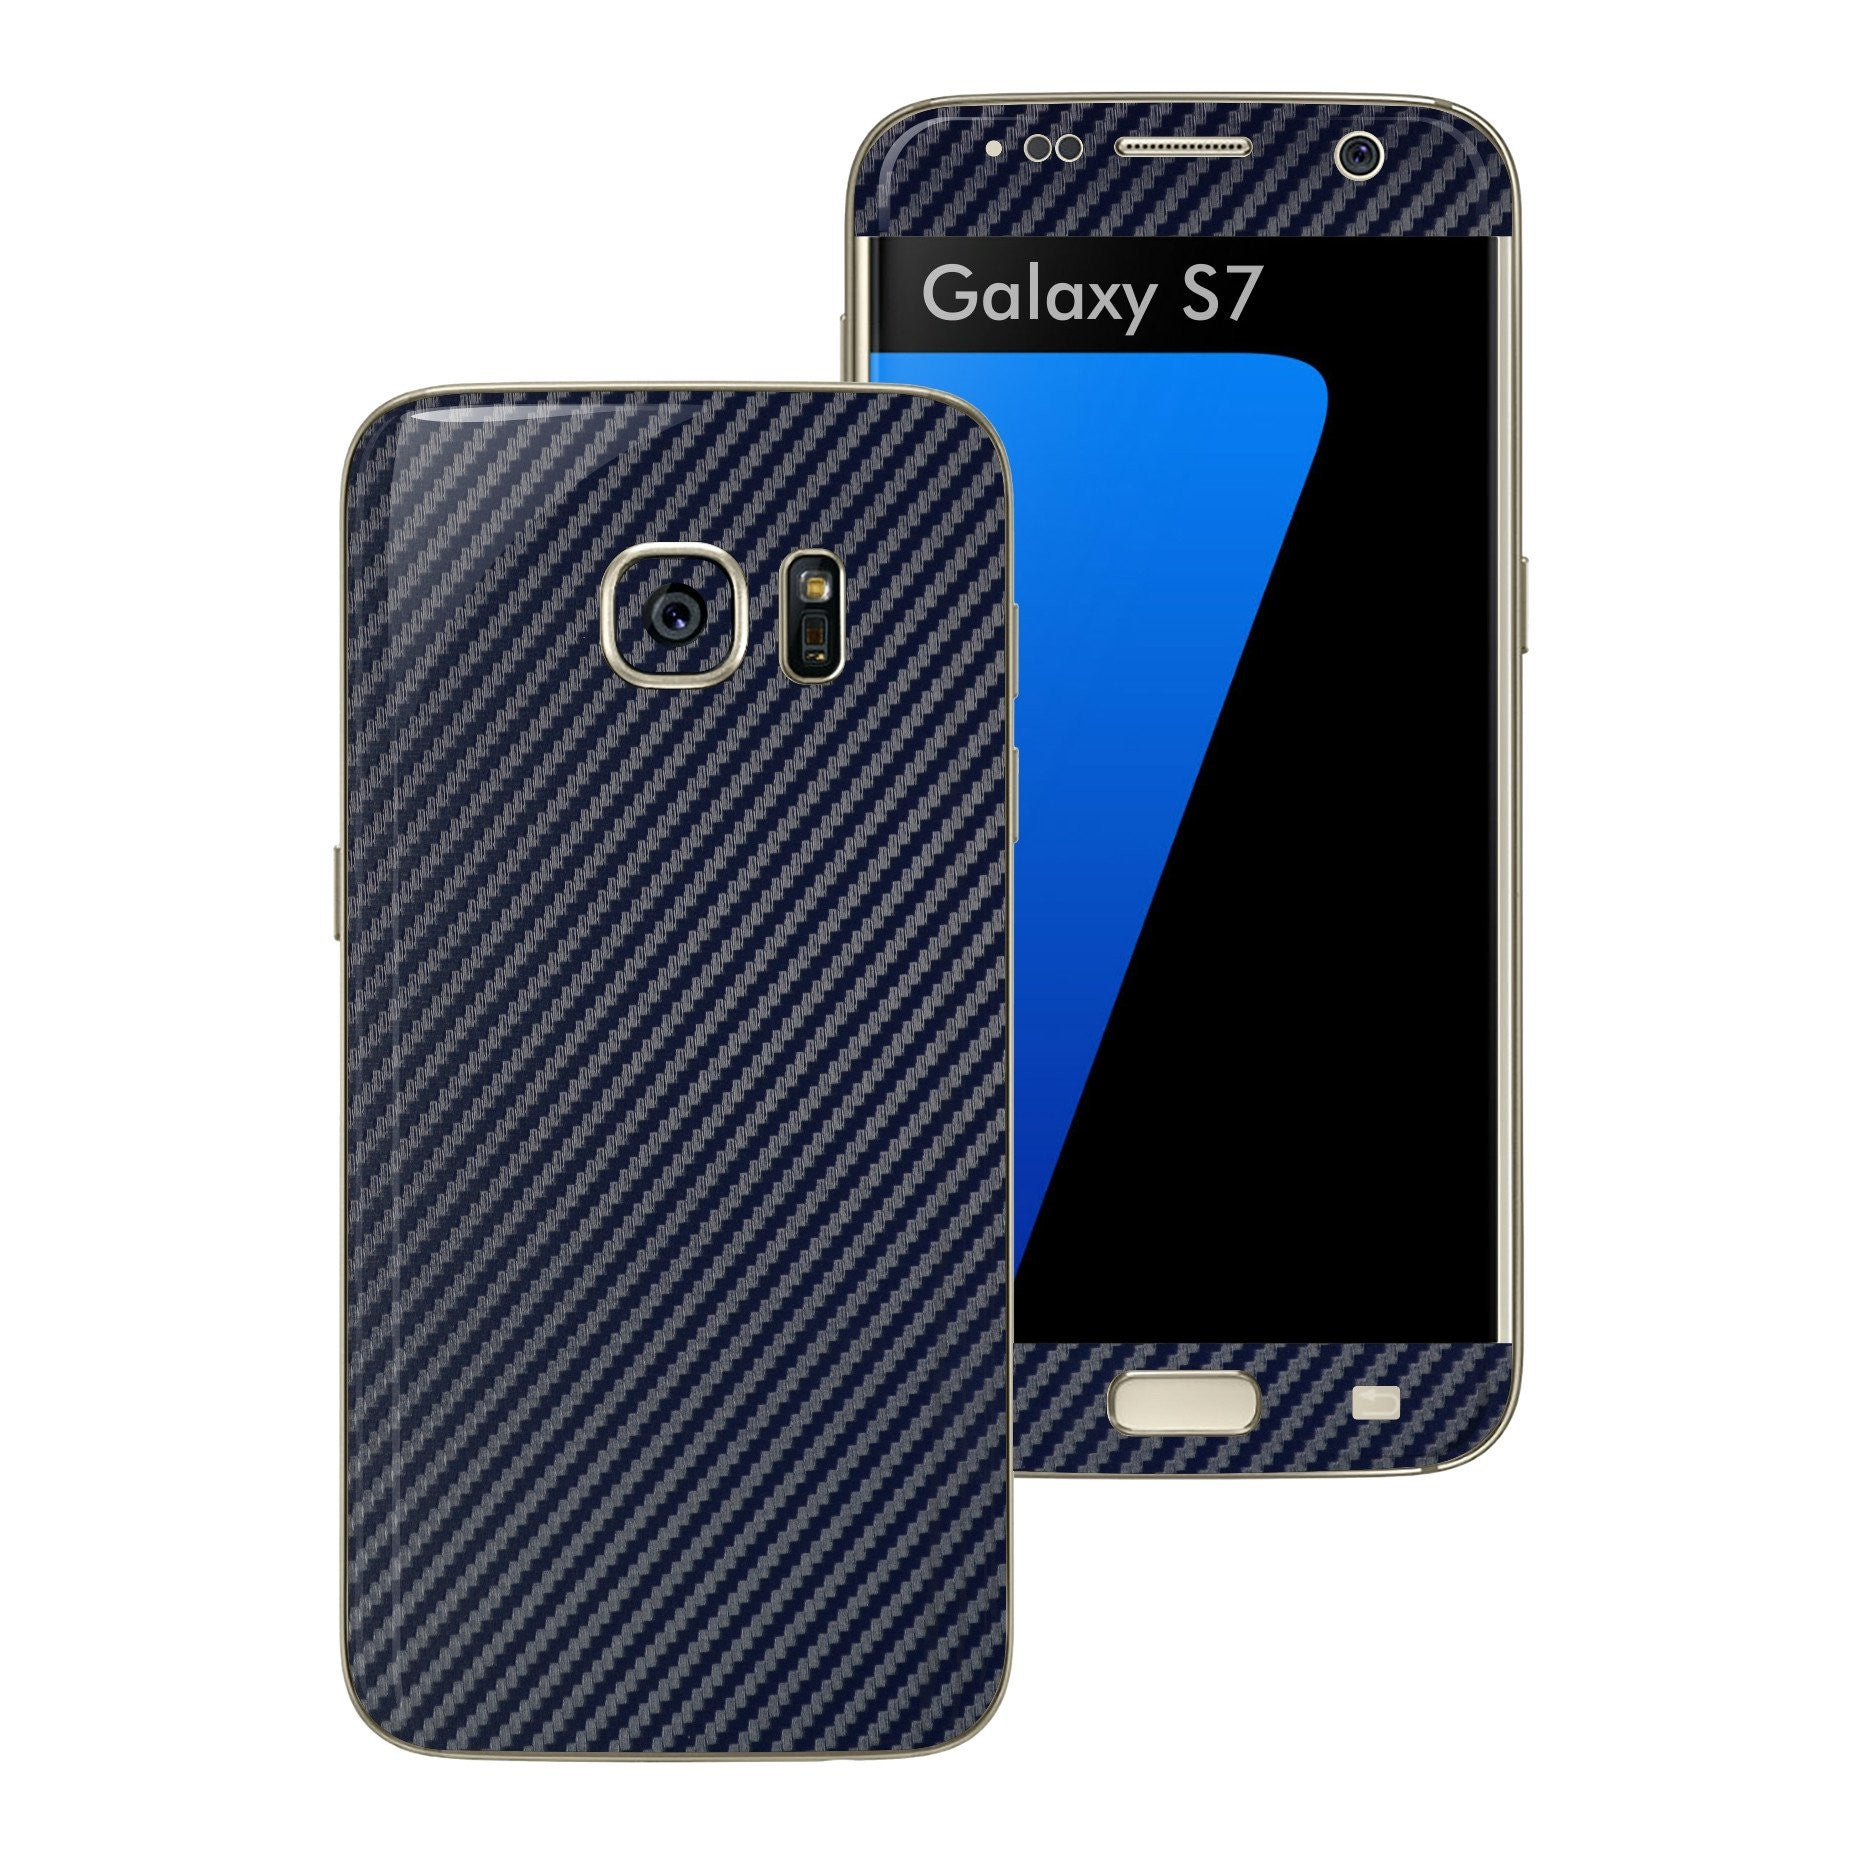 Samsung Galaxy S7 NAVY BLUE 3D Carbon Fibre Fiber Skin Wrap Decal Sticker Cover Protector by EasySkinz